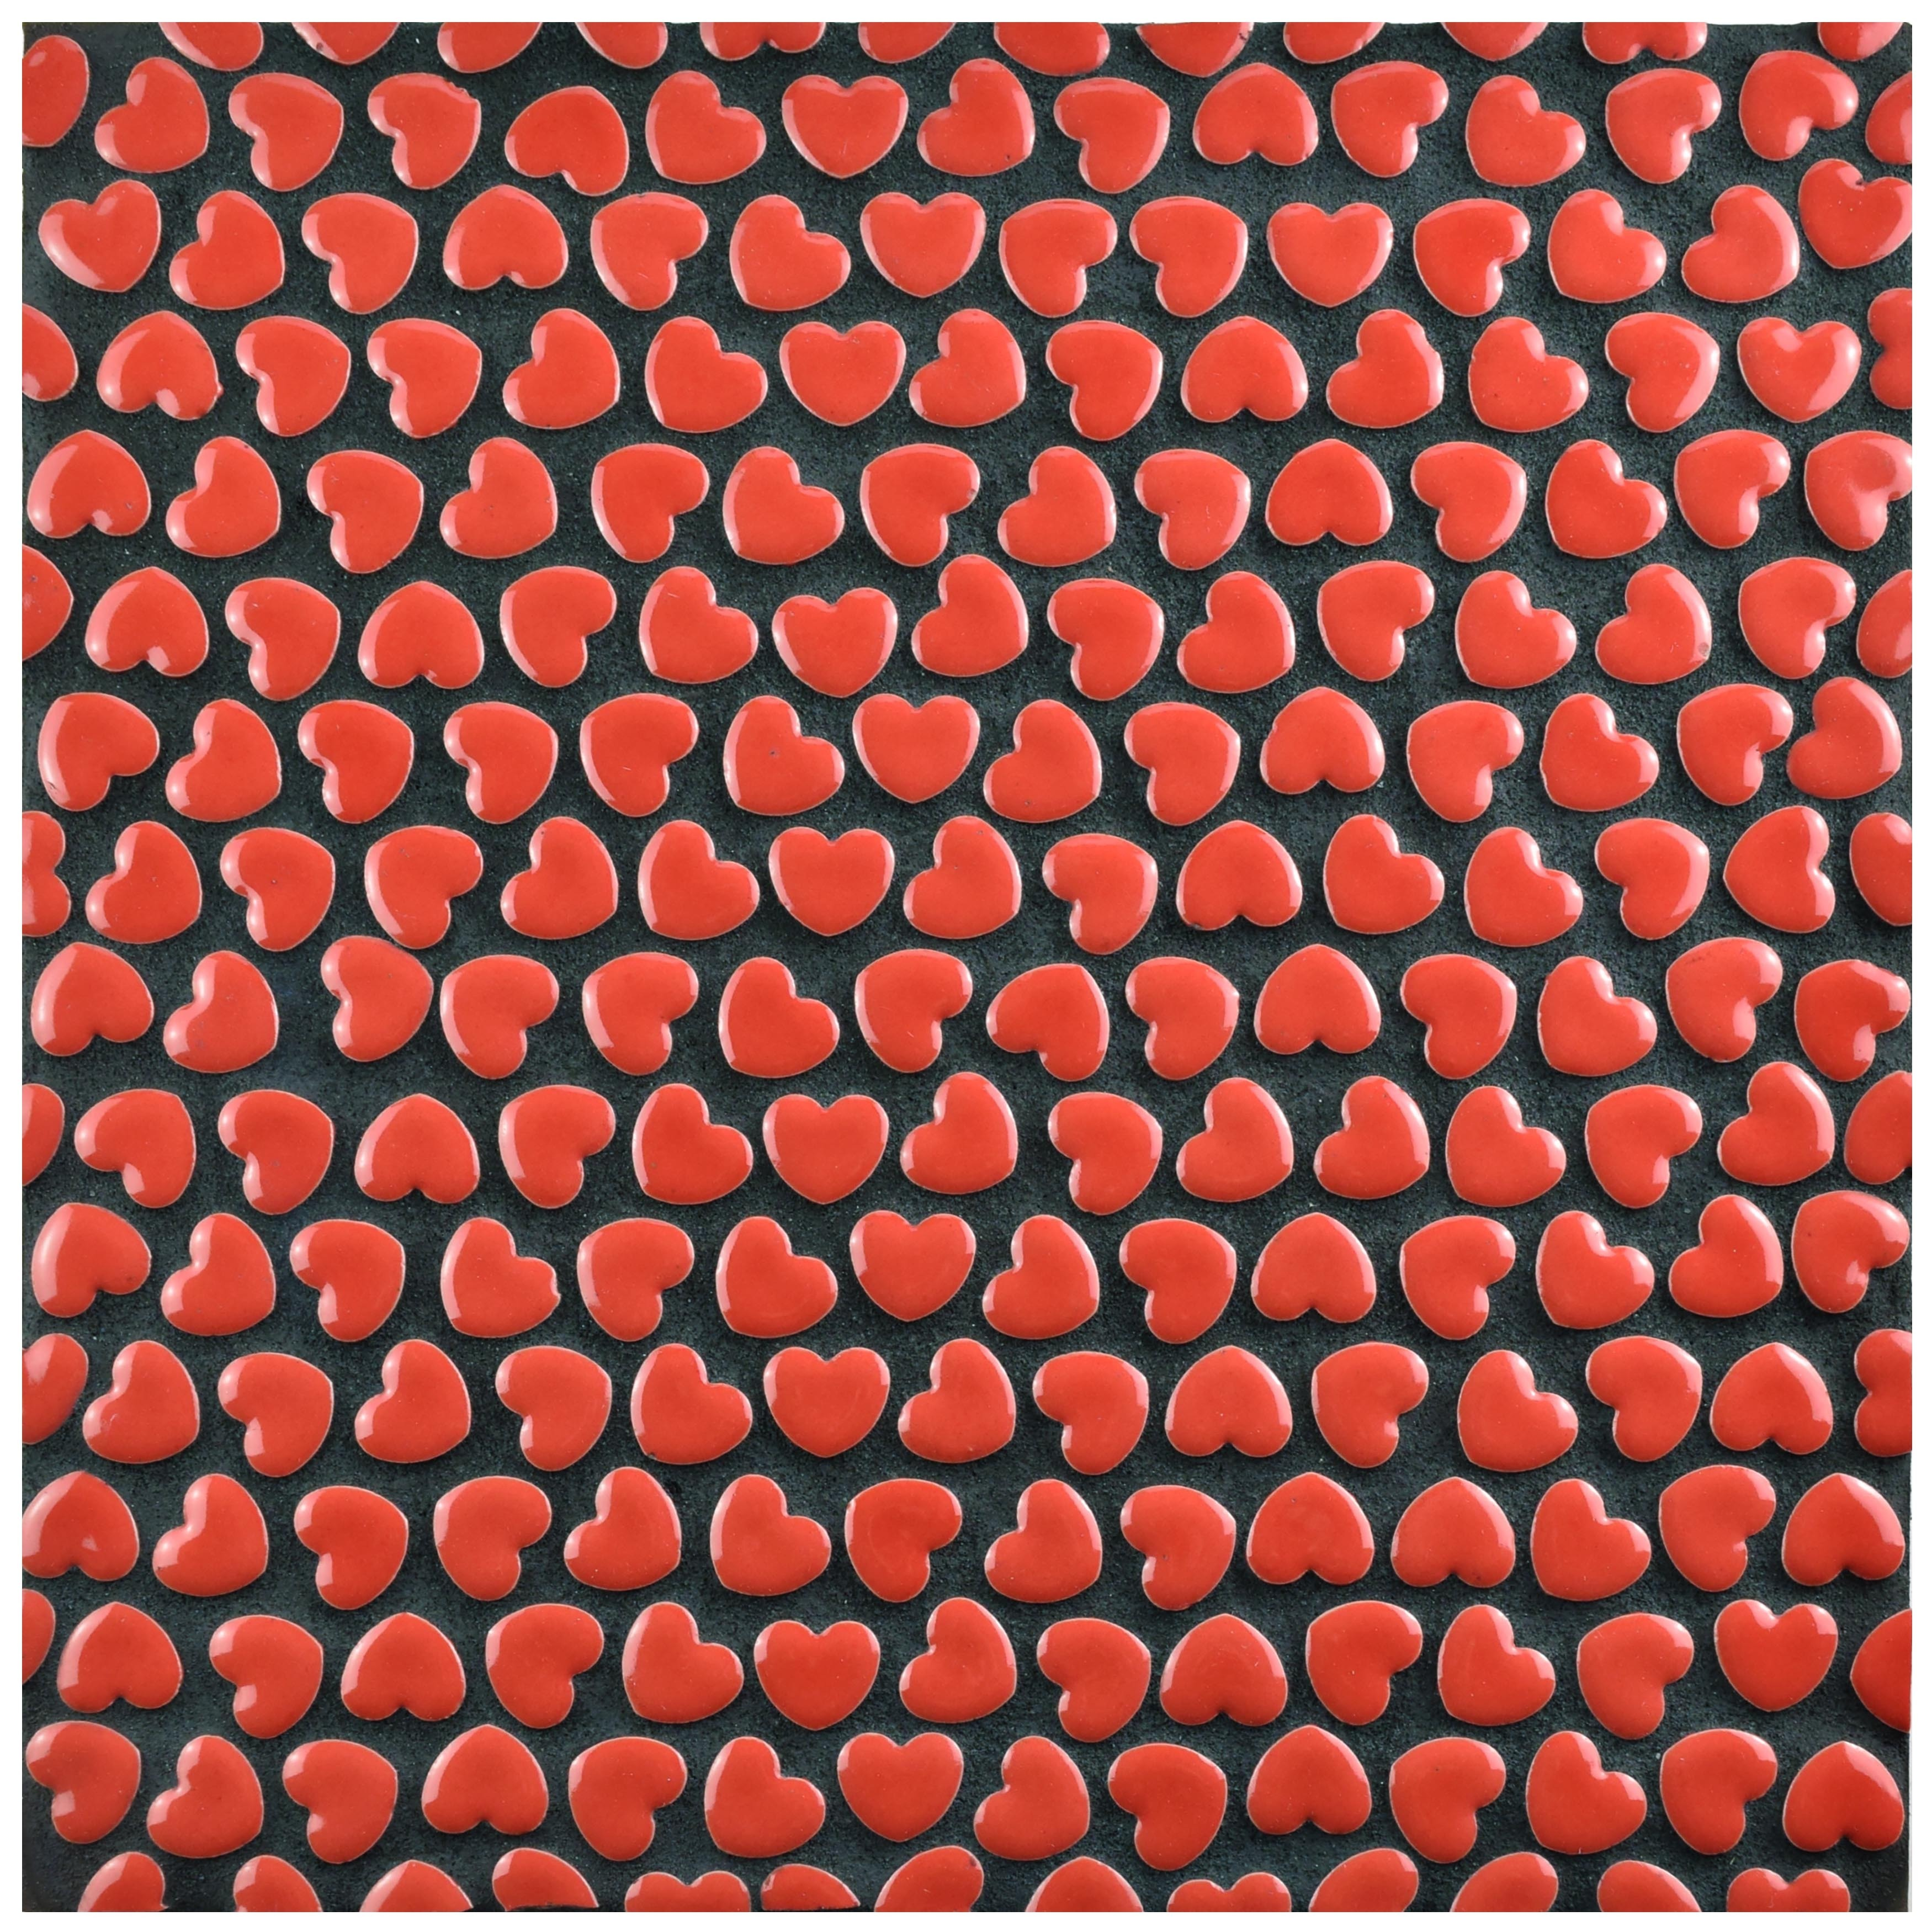 Somertile 11125x11375 inch corazon glossy red ceramic mosaic floor somertile 11125x11375 inch corazon glossy red ceramic mosaic floor and wall tile 5 tiles44 sqft free shipping today overstock 18723695 dailygadgetfo Choice Image